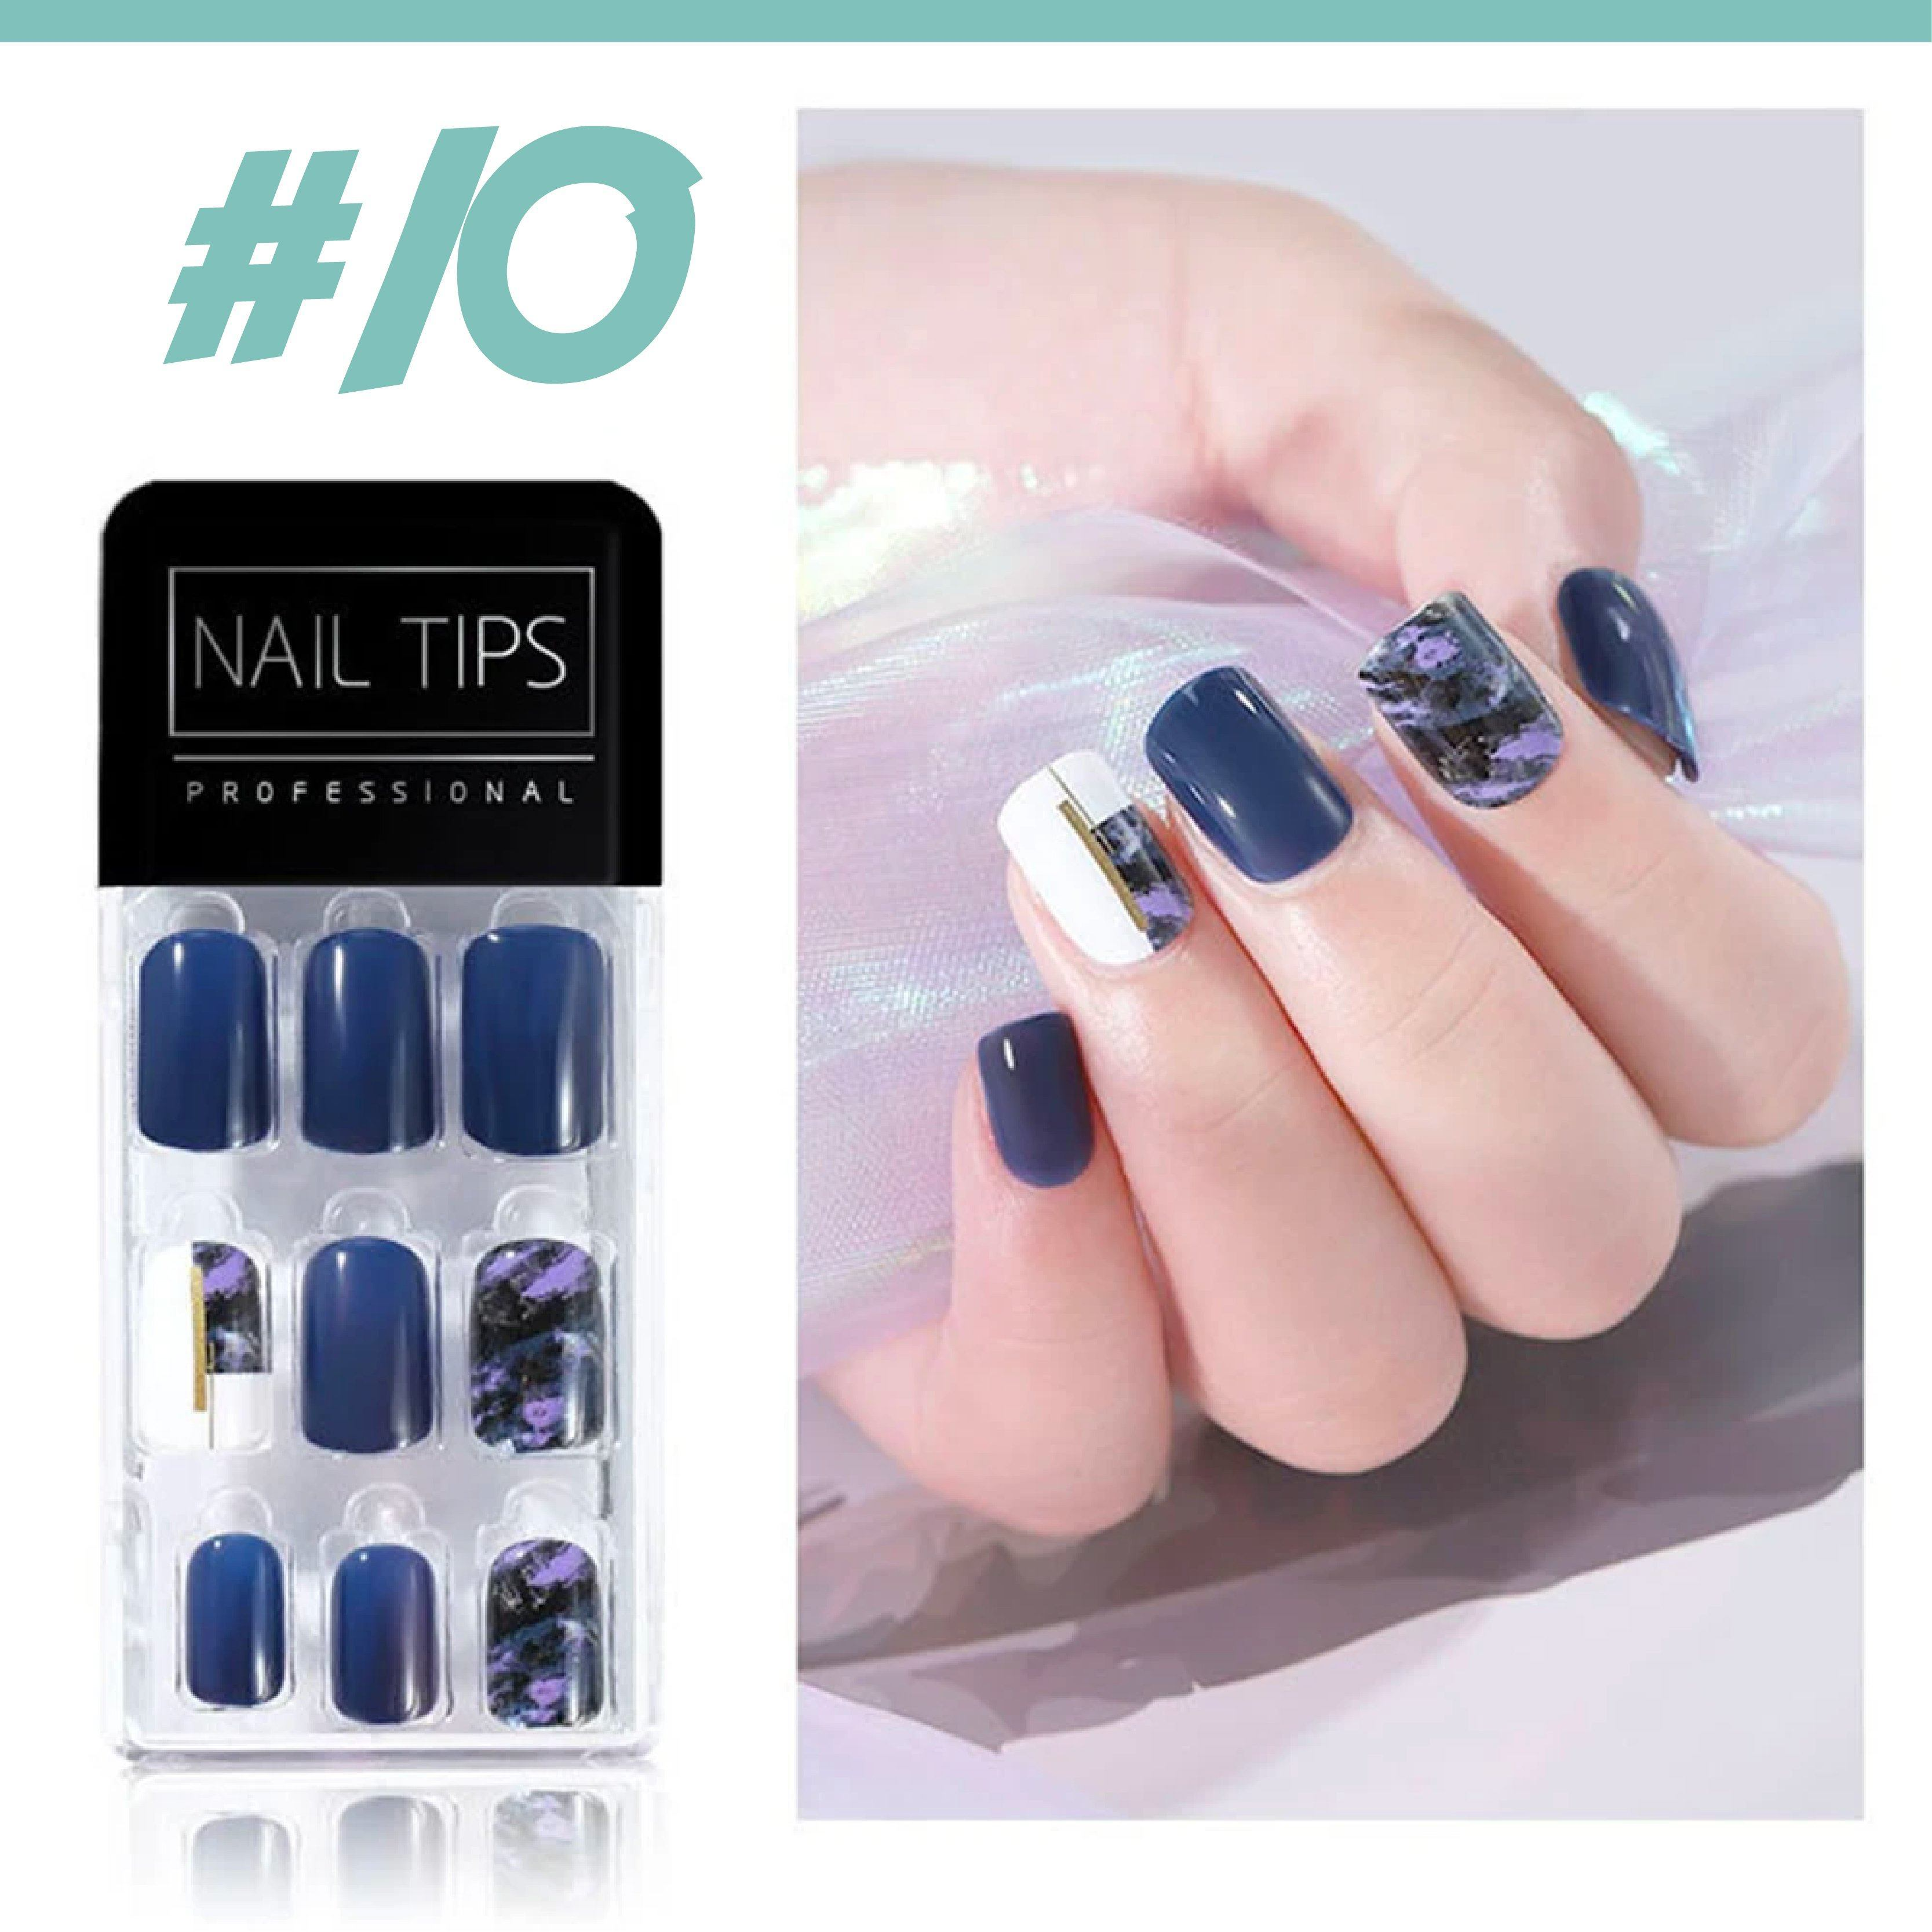 No Glue Stick-On Nail Beauty & Health summertwinkle #010